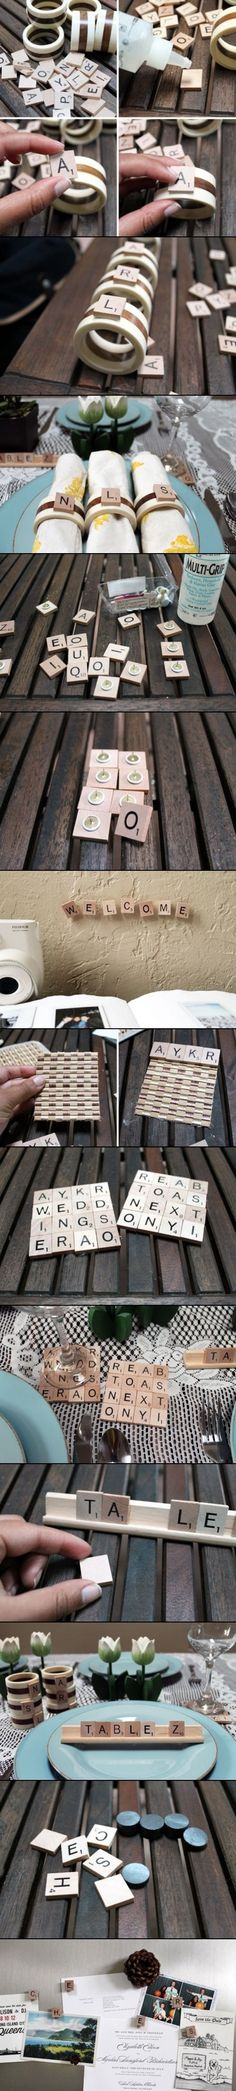 DIY Crafts Of Scrabble.Use sticky Braille to Braille the letters. Scrabble Tile Crafts, Scrabble Art, Craft Projects, Projects To Try, Love Garden, Love Craft, Deco Table, Diy Interior, Diy Home Crafts